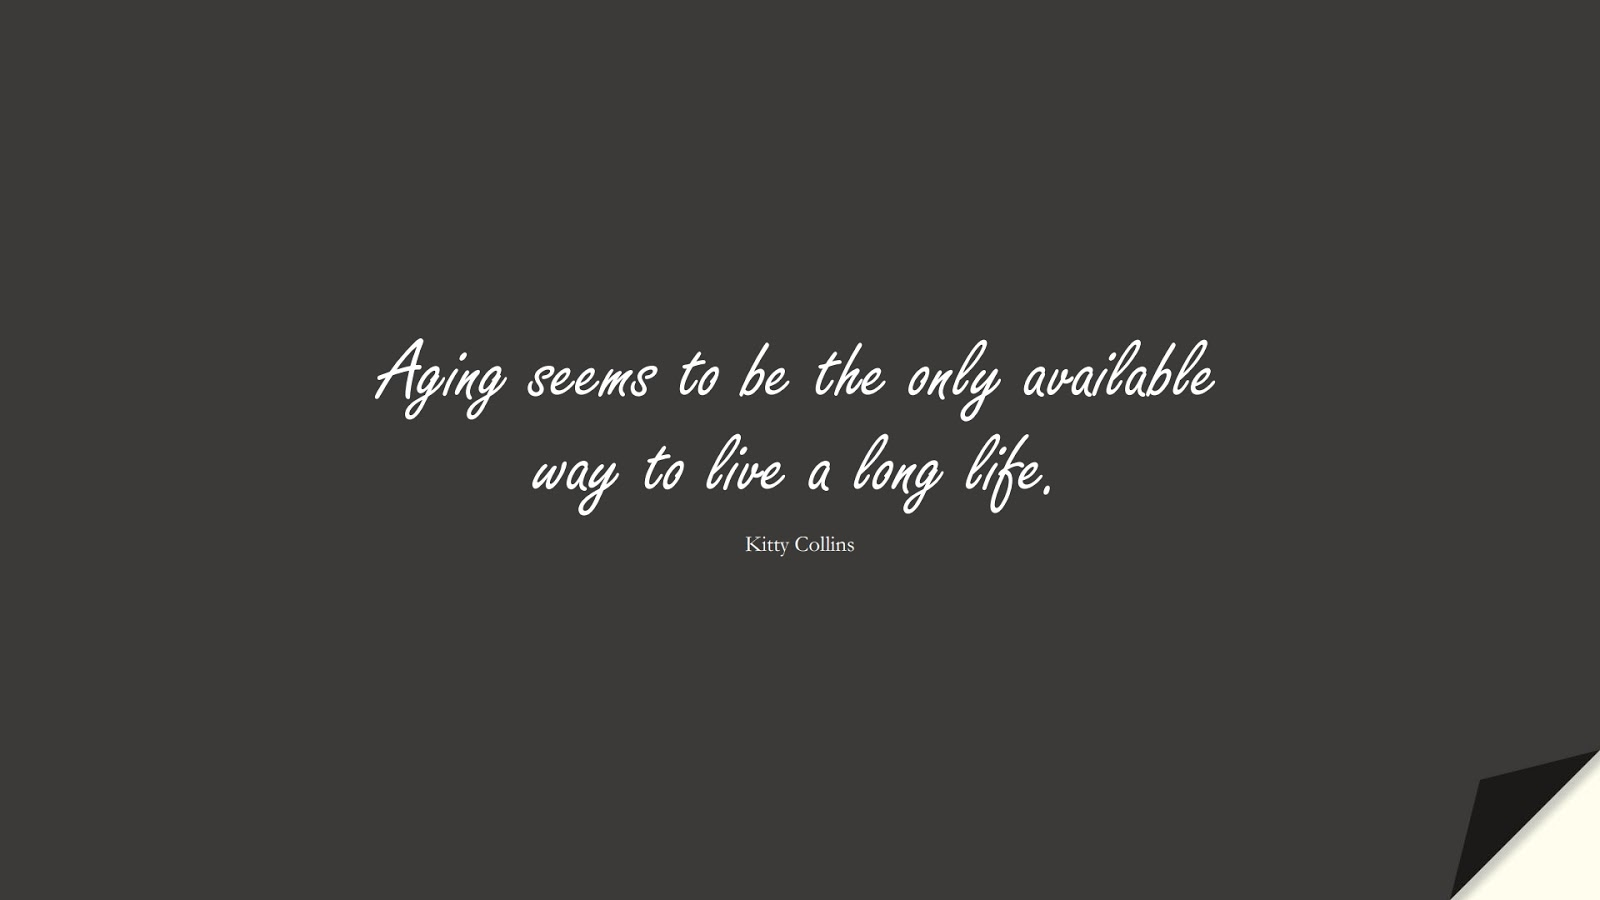 Aging seems to be the only available way to live a long life. (Kitty Collins);  #BirthdayQuotes